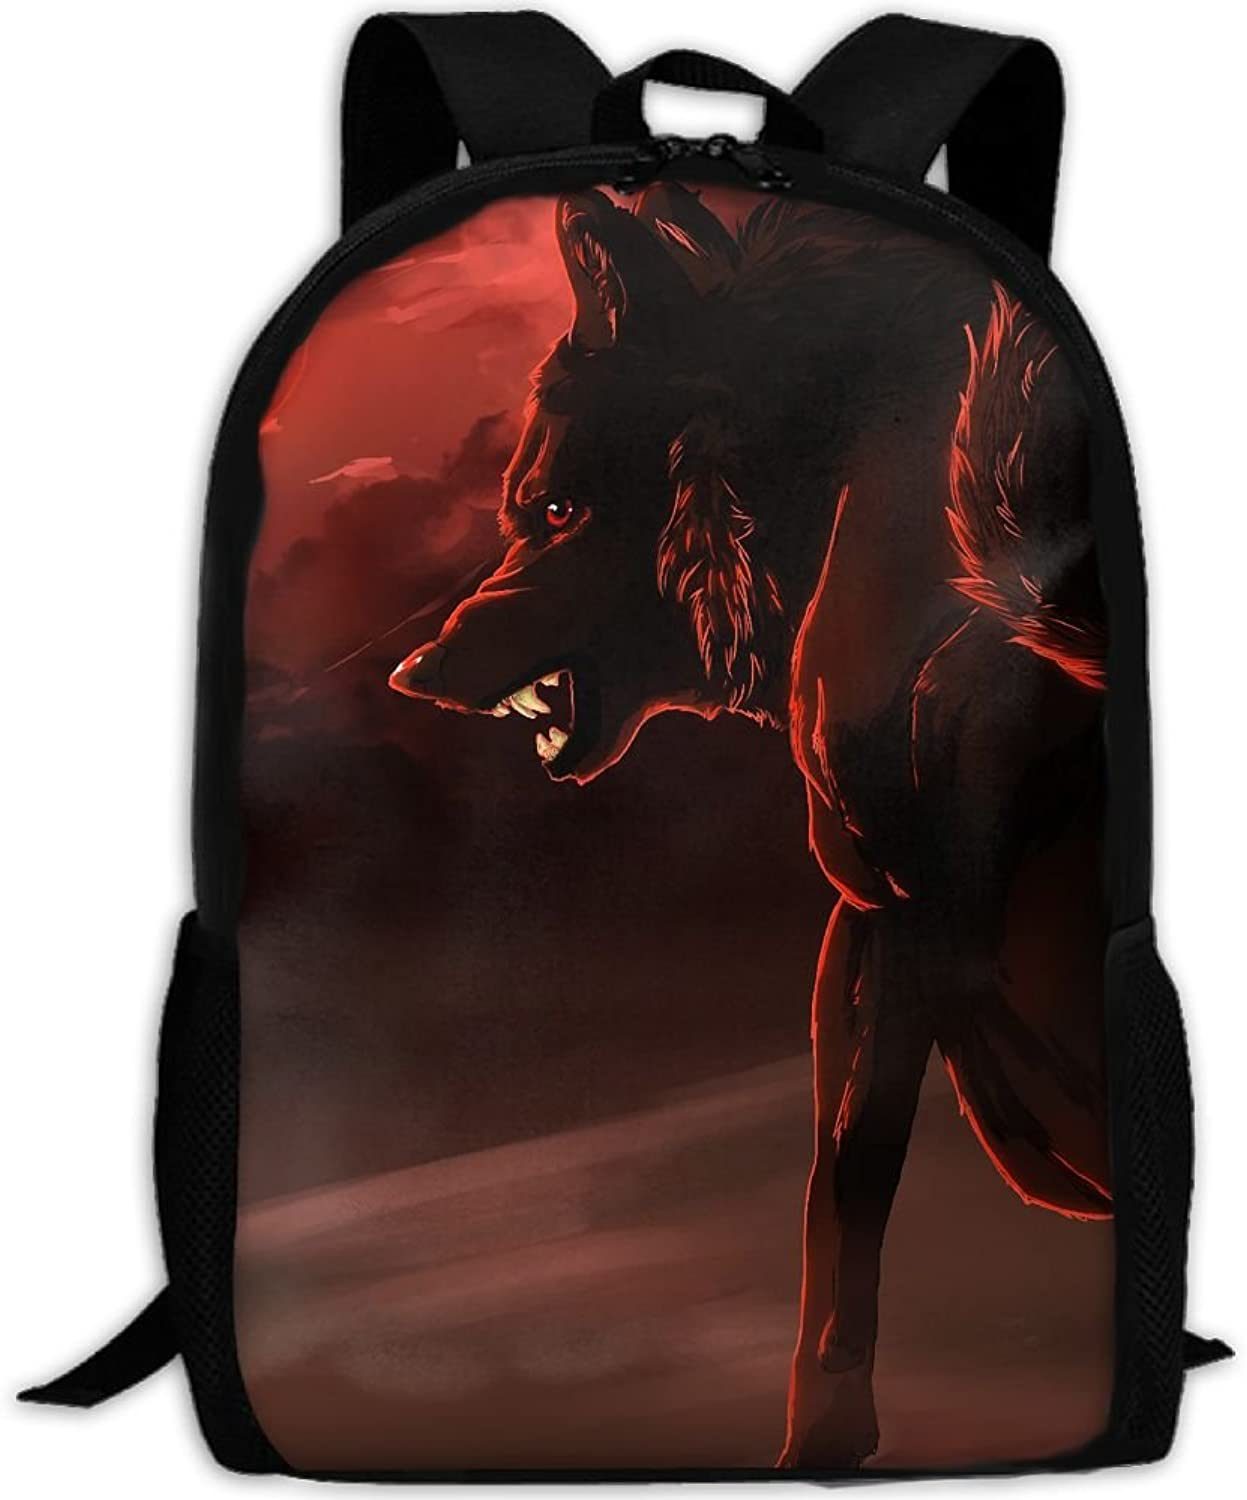 Backpack Briefcase Laptop Travel Hiking School Bags Angry Wolf Red Moon Daypack Shoulder Bag